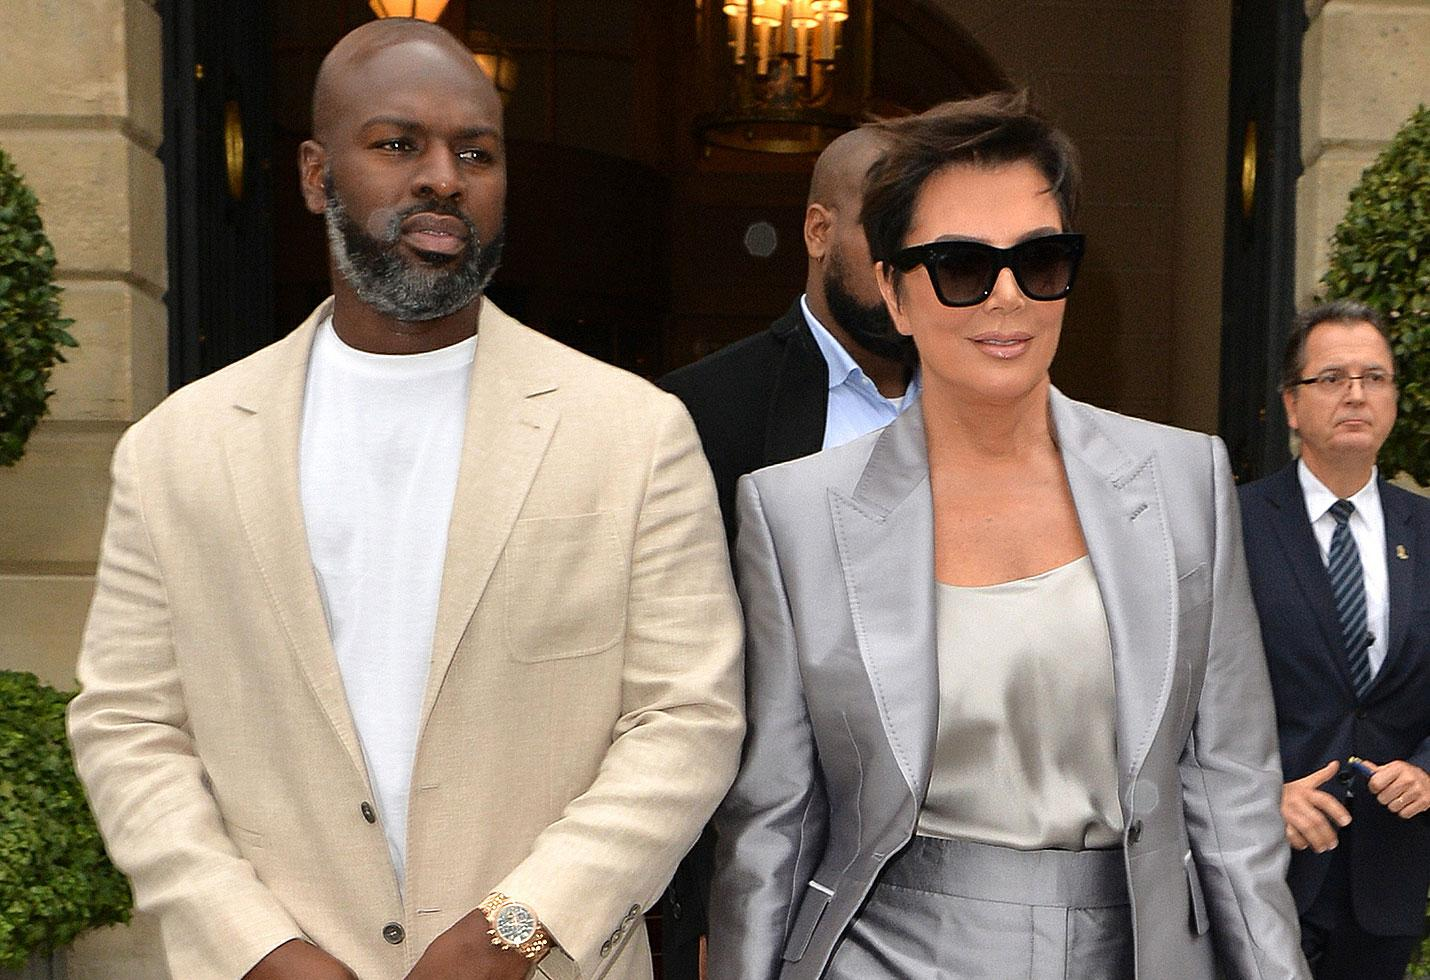 KUWK: Corey Gamble And Kris Jenner Have Reportedly Discussed Having Kids Together!